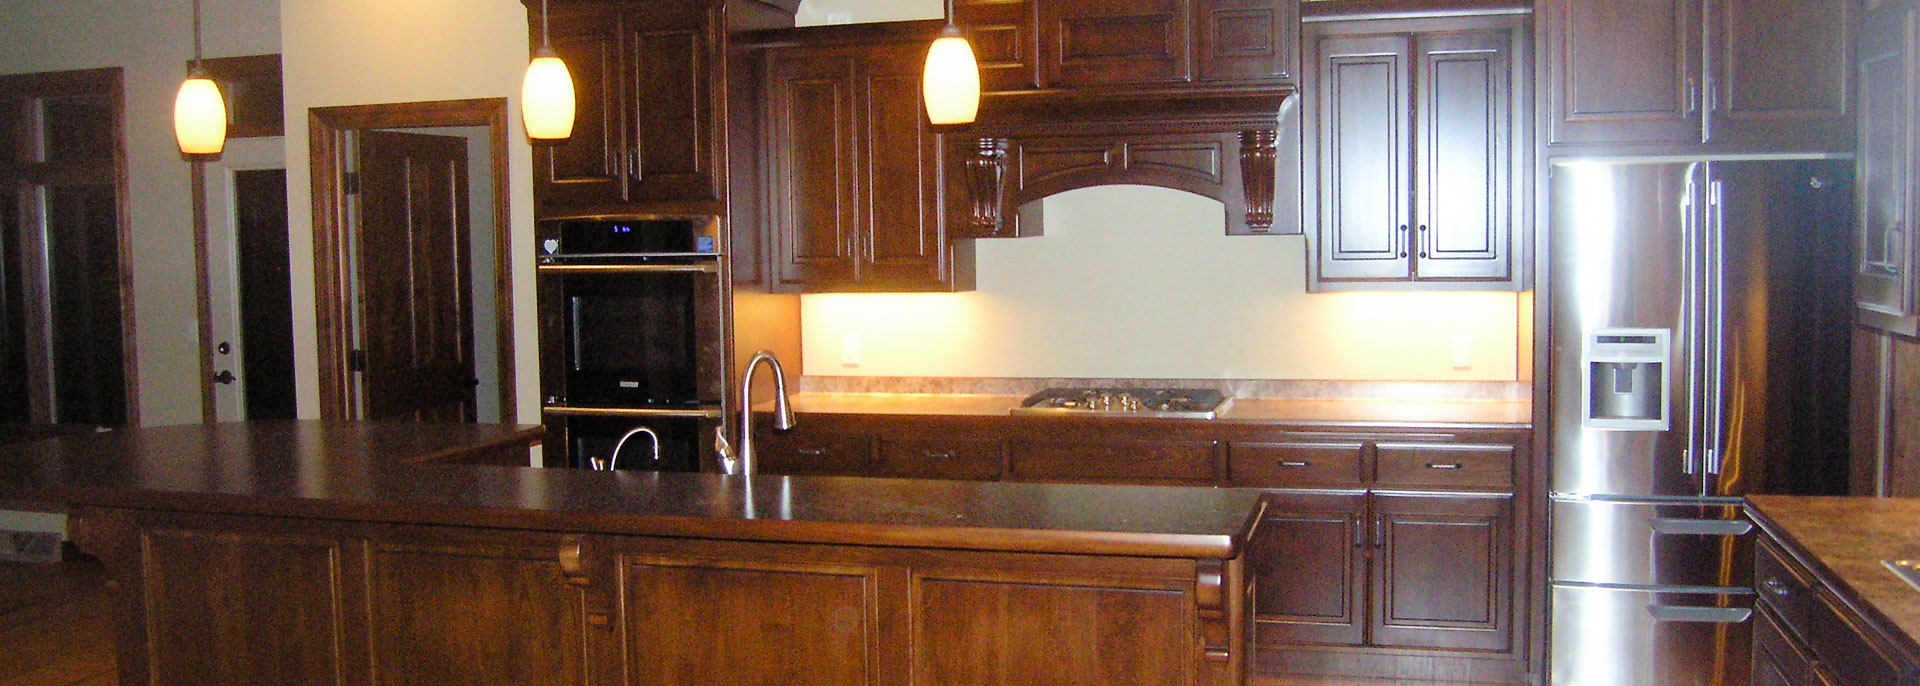 Heritage Woodworks | Wisconsin Cabinets on kitchen cabinets san diego, kitchen cabinets knoxville, kitchen cabinets michigan, kitchen cabinets north carolina, kitchen cabinets oklahoma, kitchen cabinets boca raton, kitchen cabinets in ohio, kitchen cabinets pennsylvania, kitchen cabinets columbus ohio, kitchen cabinets virginia, kitchen cabinets utah, kitchen cabinets el paso, kitchen cabinets tucson, kitchen cabinets in maryland, kitchen cabinets cincinnati, kitchen cabinets miami, kitchen cabinets new jersey, kitchen cabinets in florida, kitchen cabinets hawaii, kitchen cabinets connecticut,